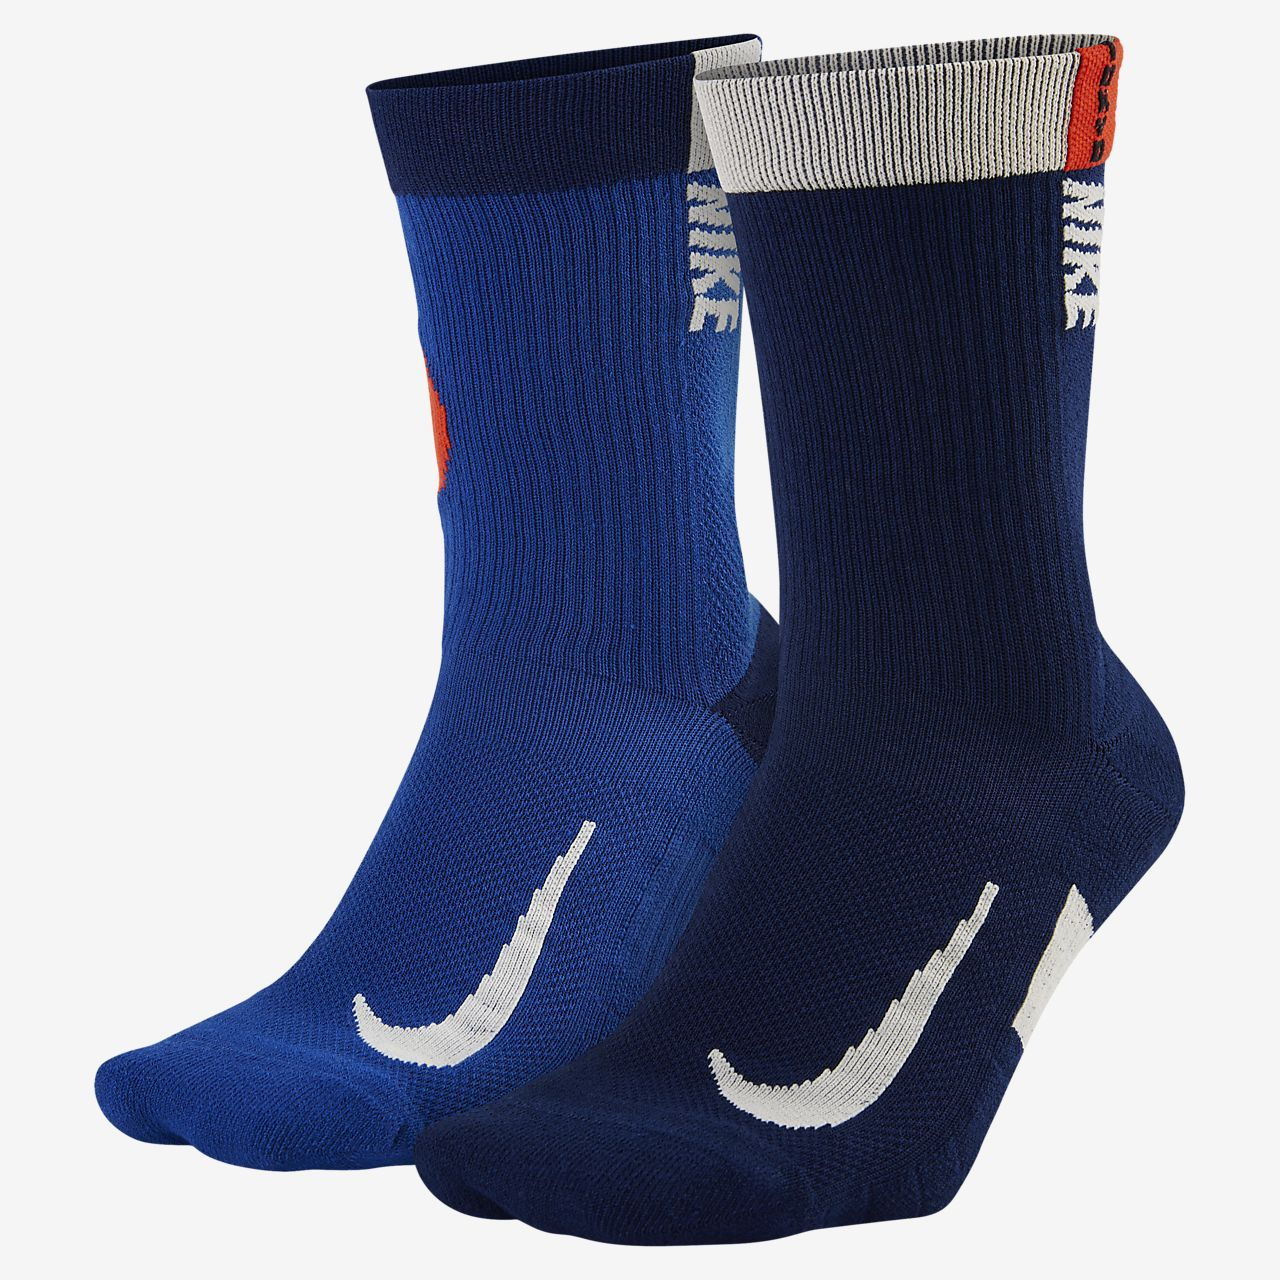 Nike Multiplier Running Crew Socks (2 Pair)